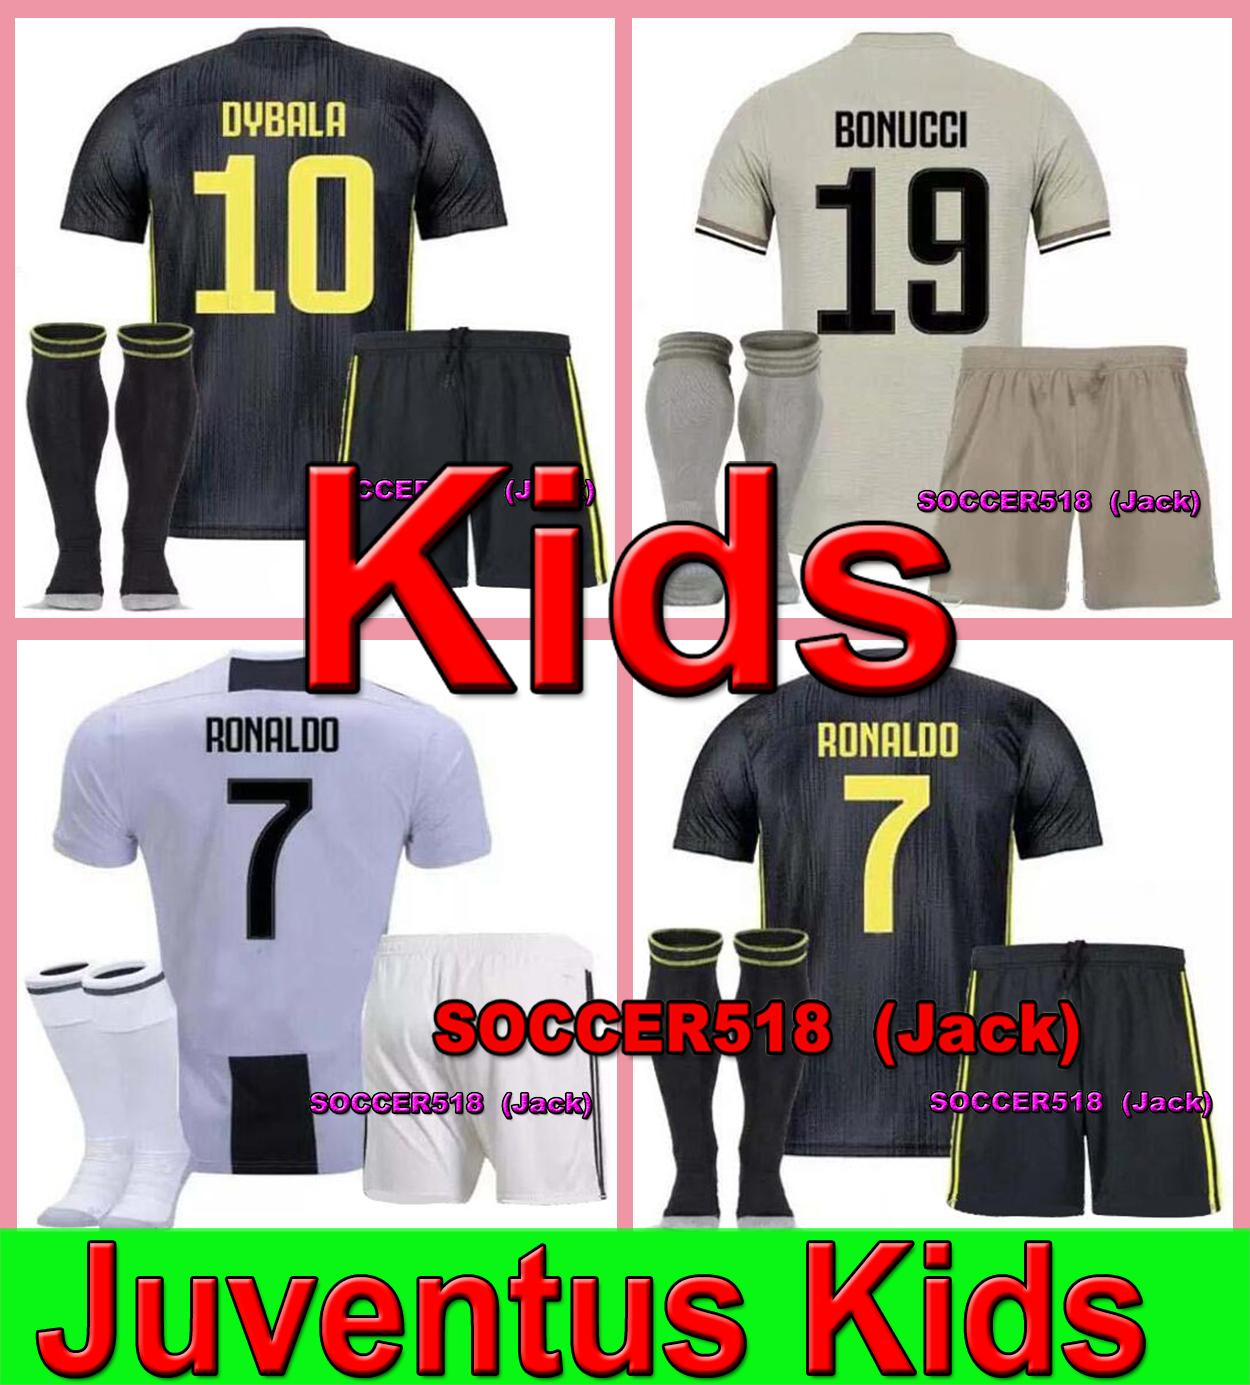 newest 28550 6a3c2 2019 kids kit juventus RONALDO #7 soccer jerseys DYBALA with shorts and  socks Maillots de football kids kit BERNARDESCHI camiseta de PJANIC